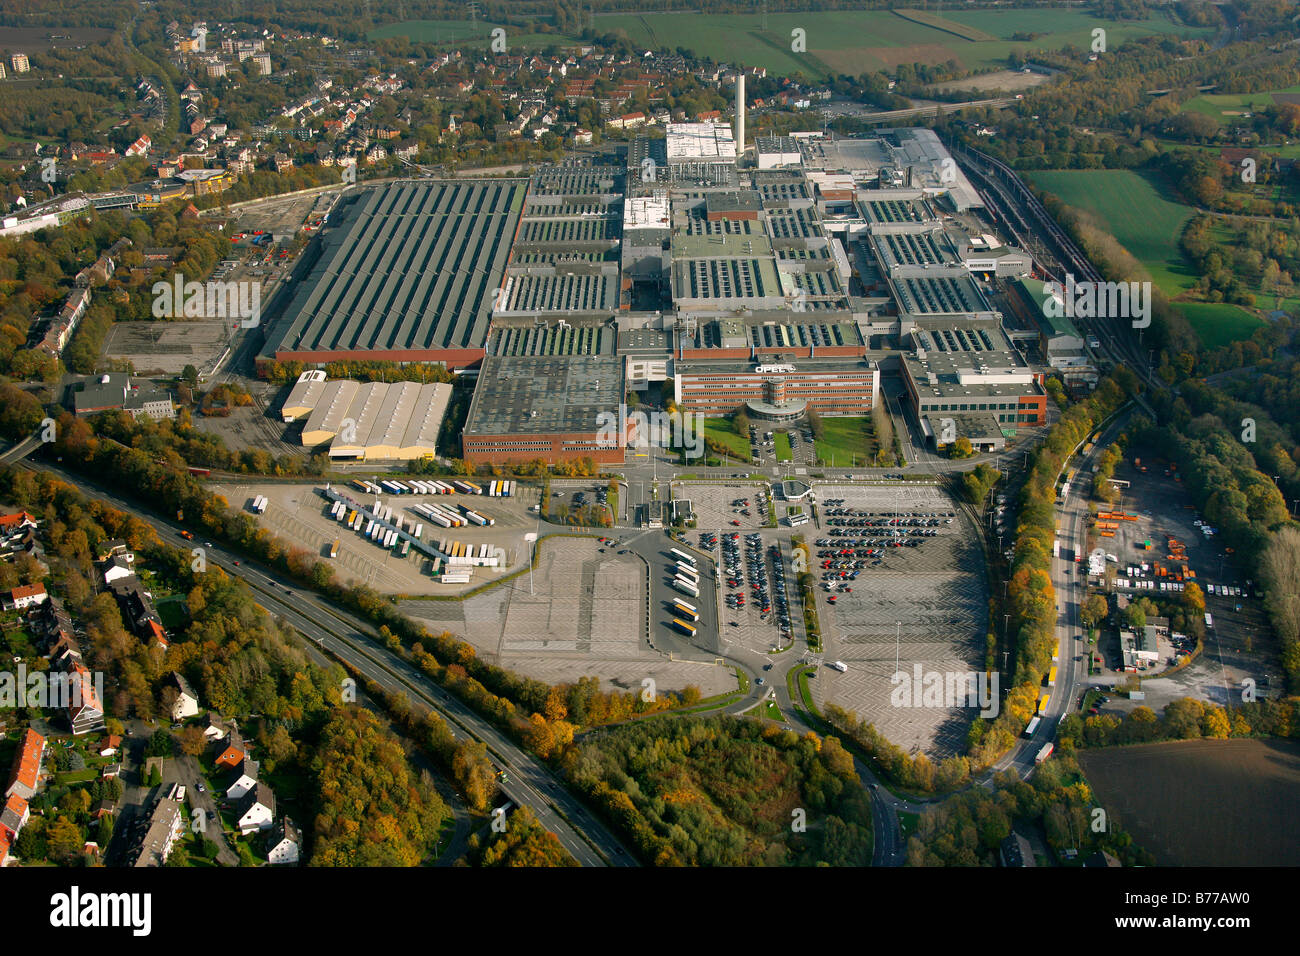 Aerial photograph, Opel Factory 1, Langendreer, General Motors, pause in production, Bochum, Ruhr district, North Stock Photo